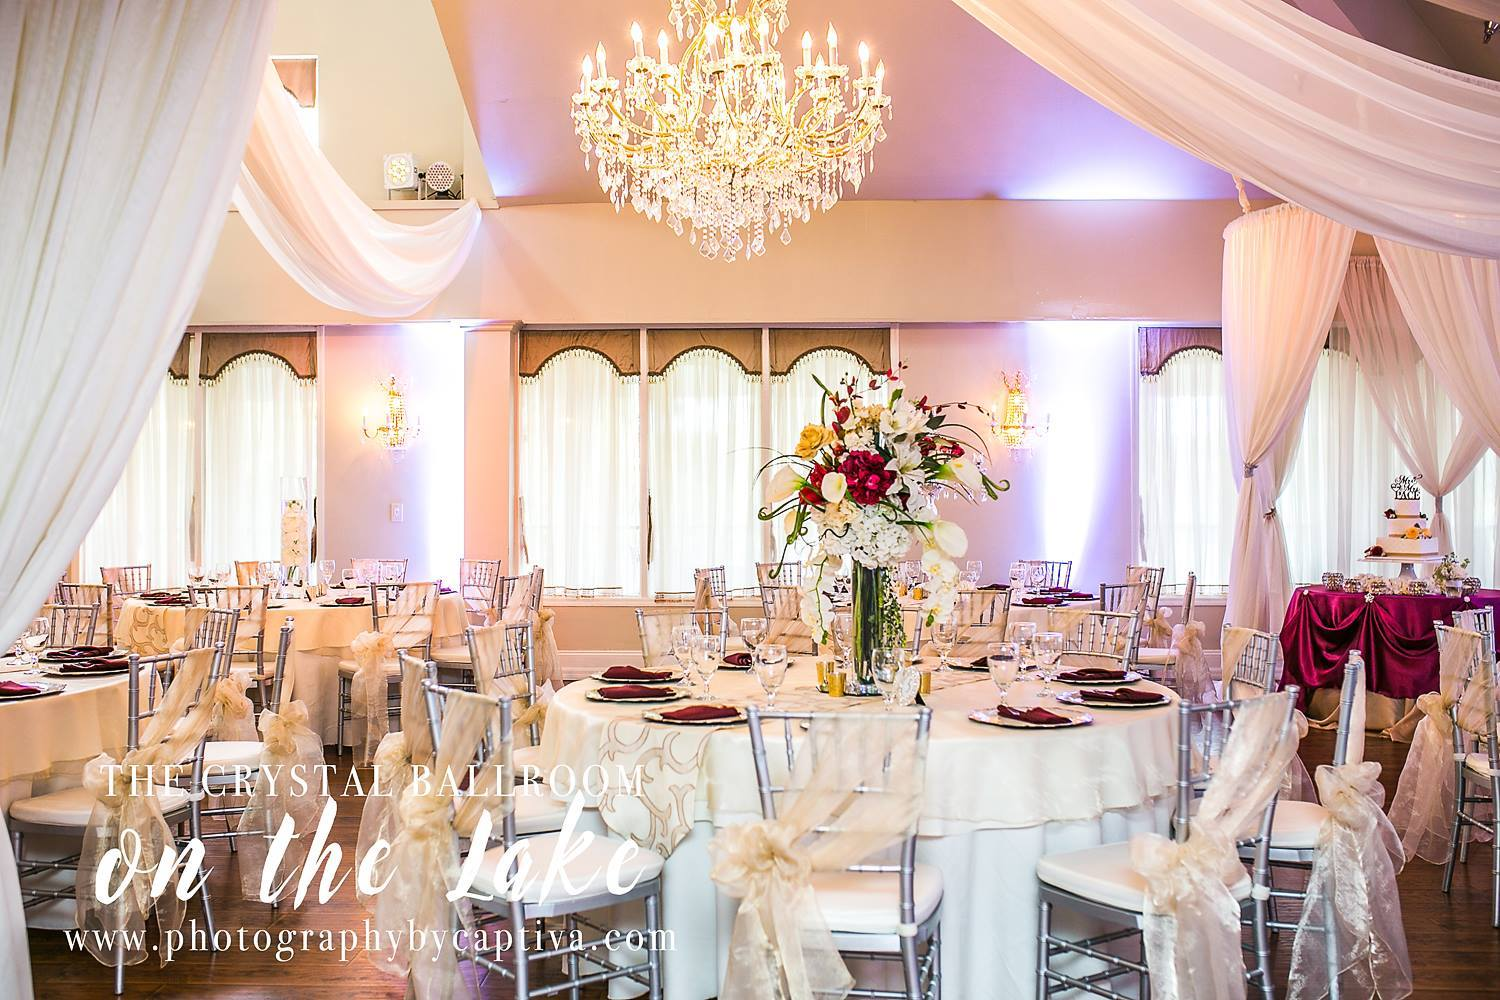 Altamonte Springs Banquet Hall Prices Book Your Event